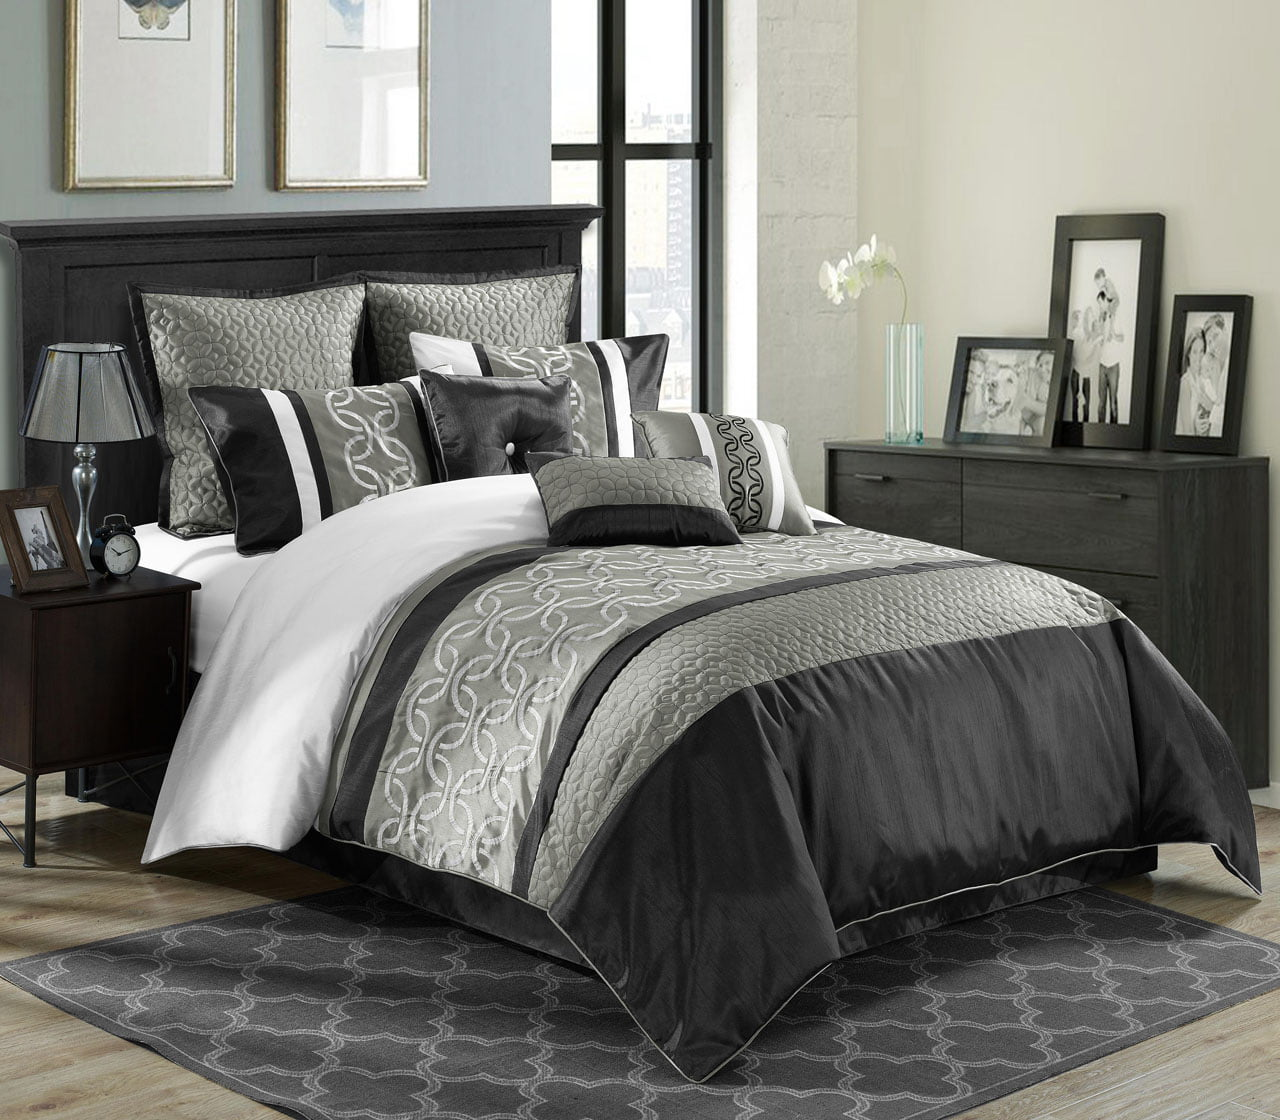 Piece Bordeaux BlackGrayWhite Comforter Set Walmartcom - White comforter bedroom design ideas